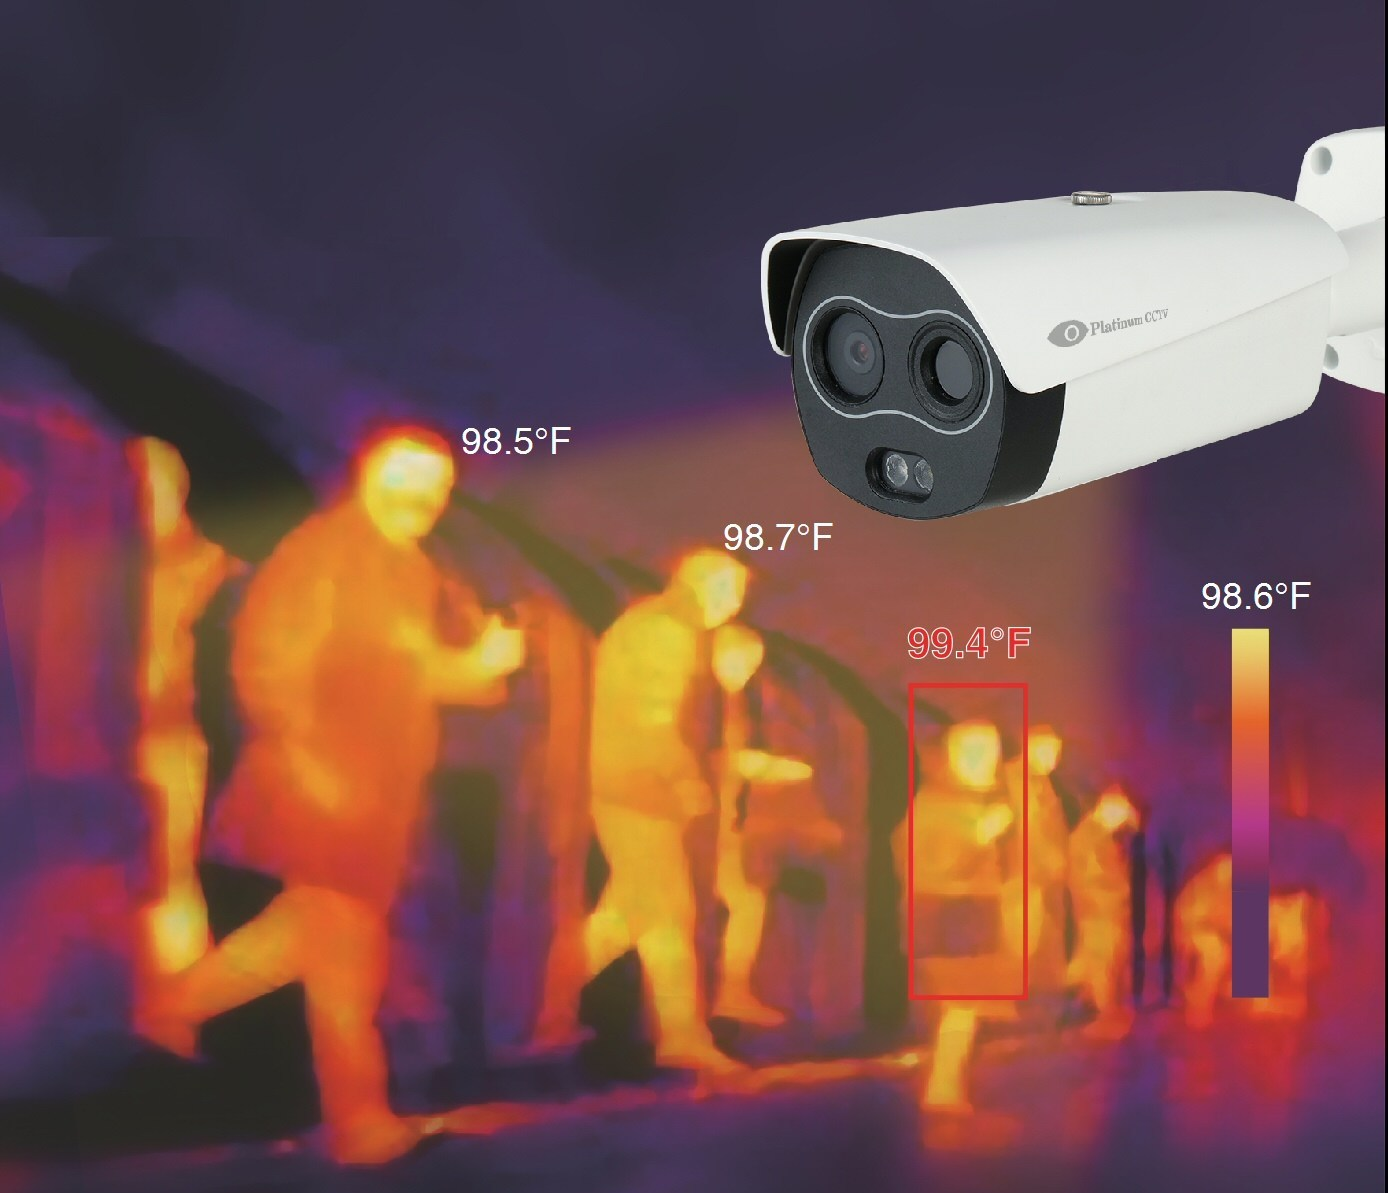 The Rise of Thermal Imaging Technology in Security Systems